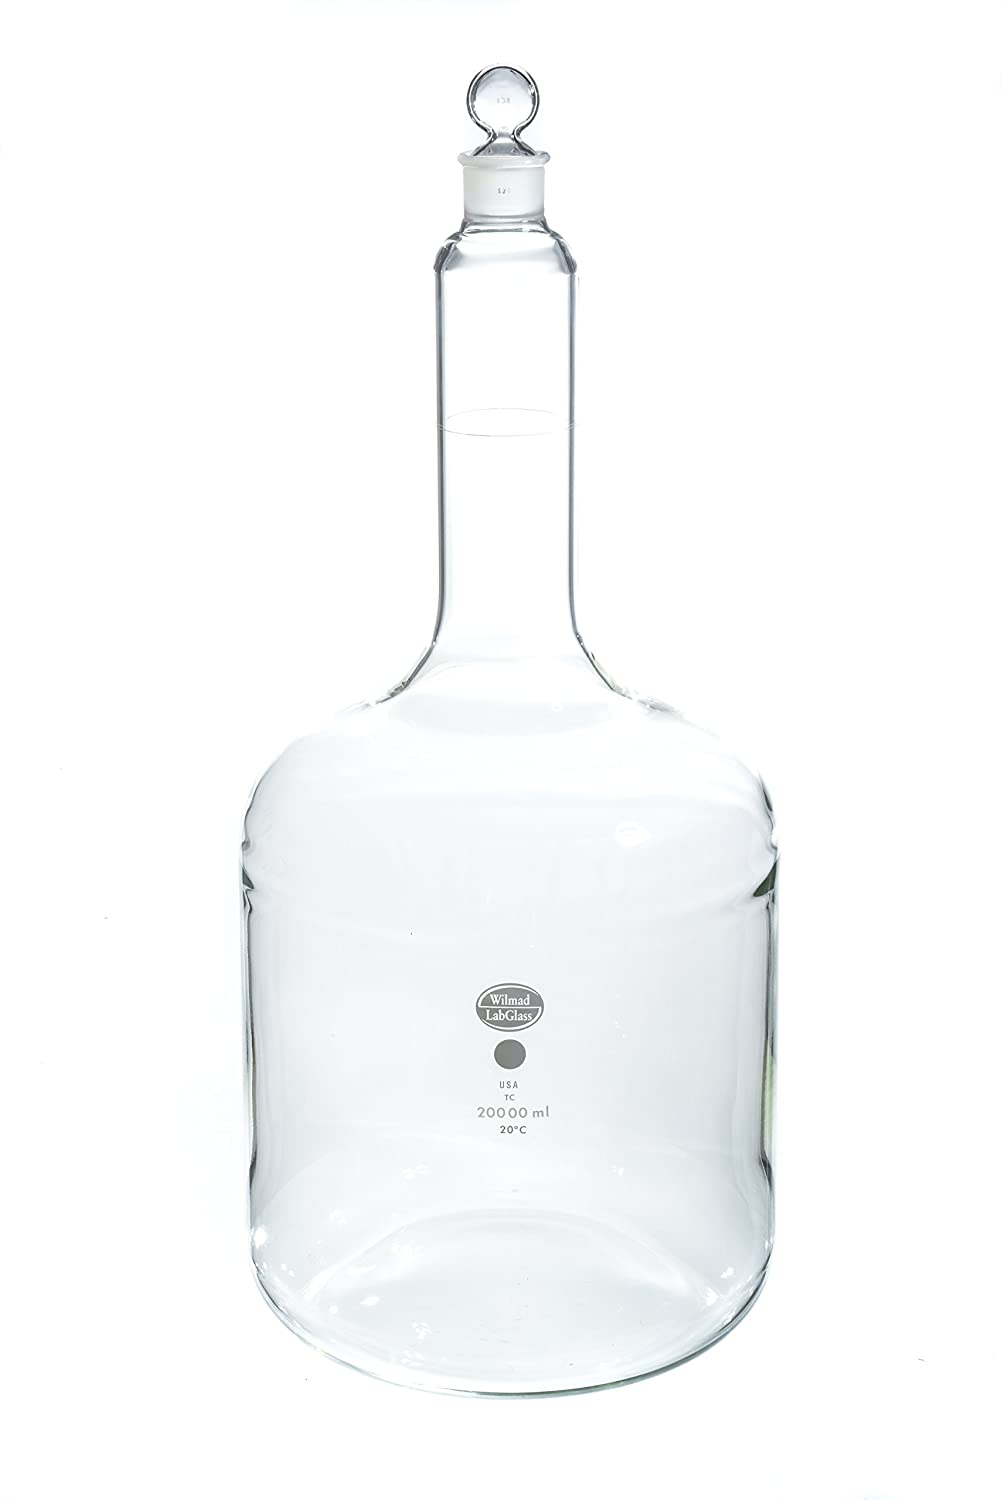 Ranking TOP12 Wilmad-LabGlass LG-8110-134 Class A Flask Reservation Stoppered Volumetric